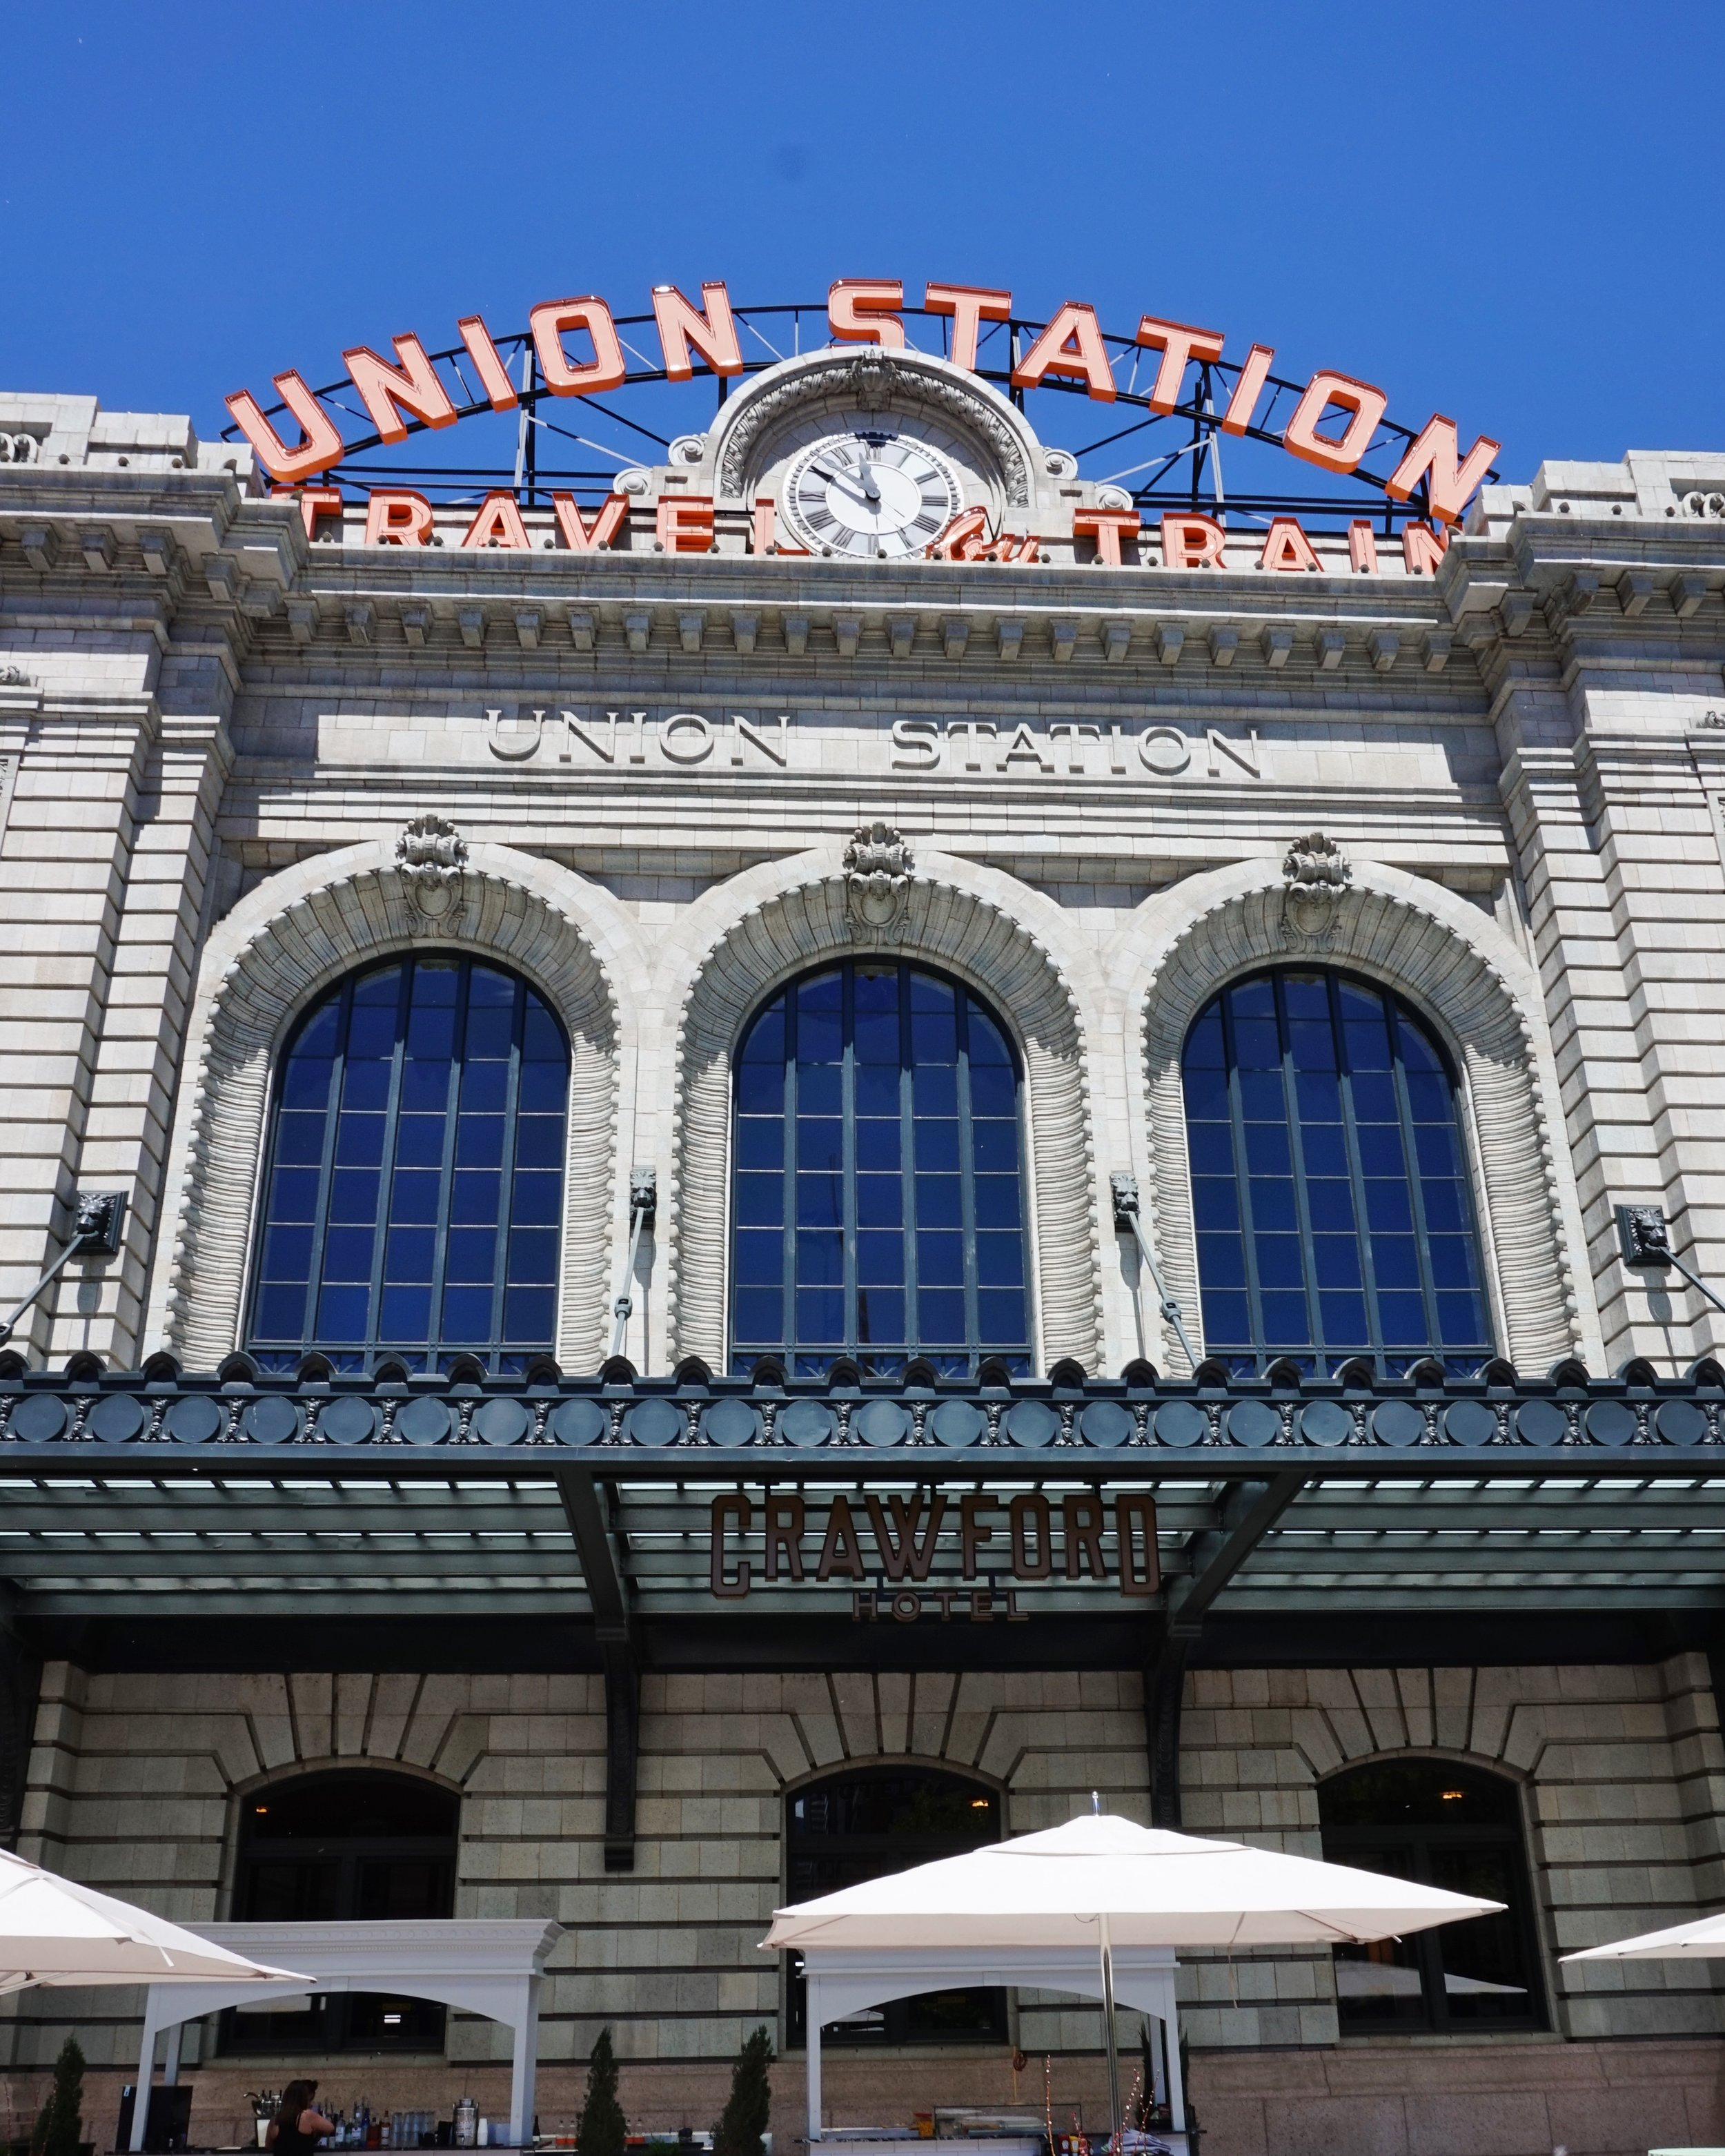 The Crawford Hotel at Union Station | Denver